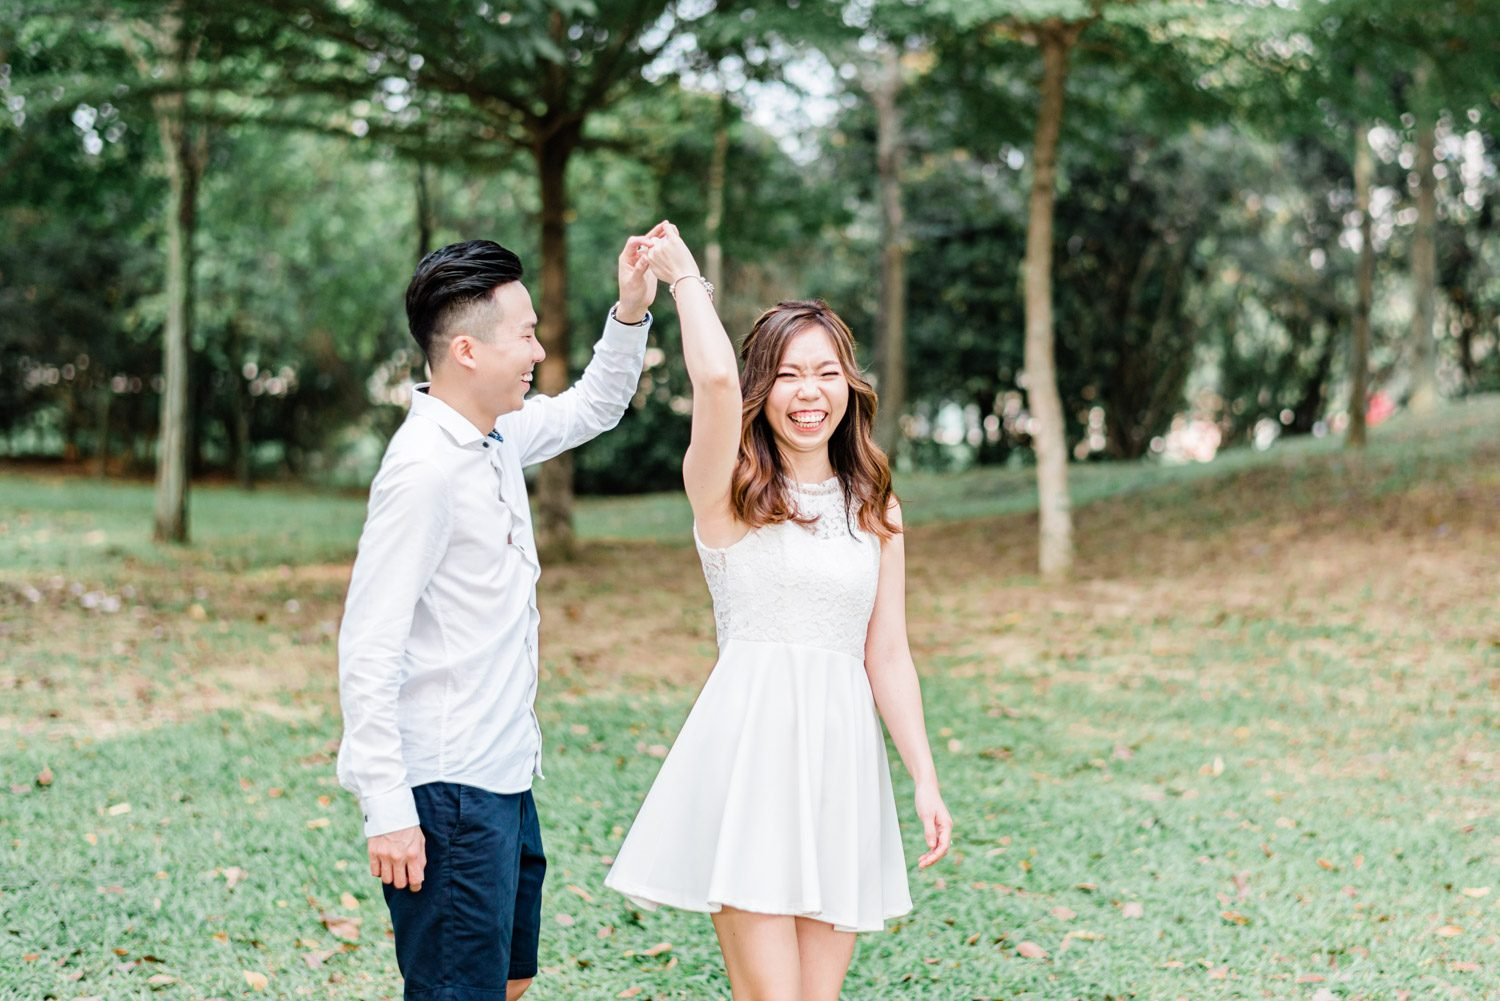 casual-pre-wedding-engagement-lifestyle-pet-golden-retriever-desa-park-city-kuala-lumpur